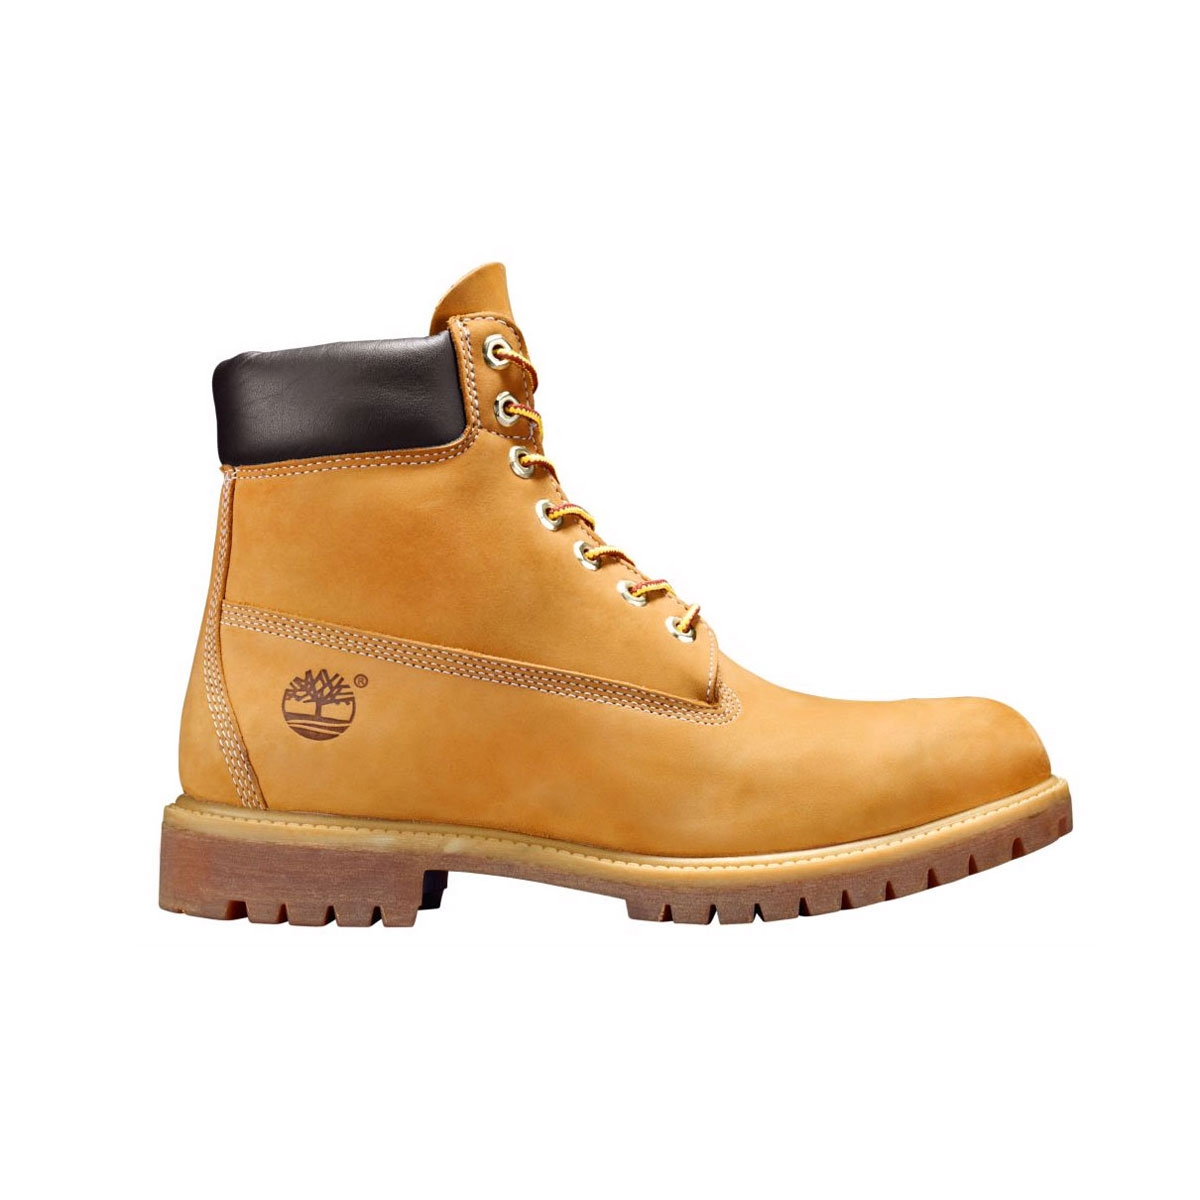 Image of Timberland Icon Classic 6 Inch Premium Original Boot Men's  Wheat  Nubuck